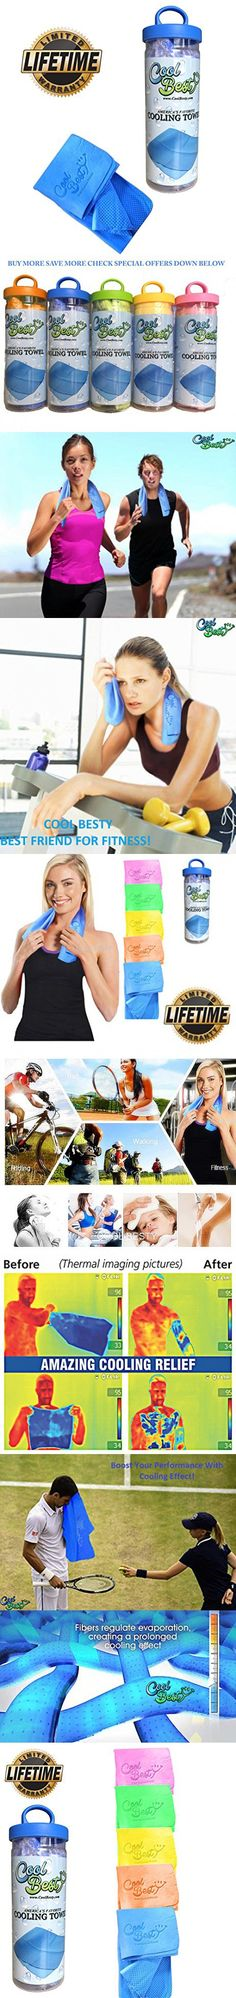 Cooling Towels - Workout / Tennis / Golf / Biking - Best For Any Sport Activities - Athletes Cold Towel - Chilly Pad By Cool Besty Instant Cooling Snap Towel - Perfect For Fitness & Gym - Blue